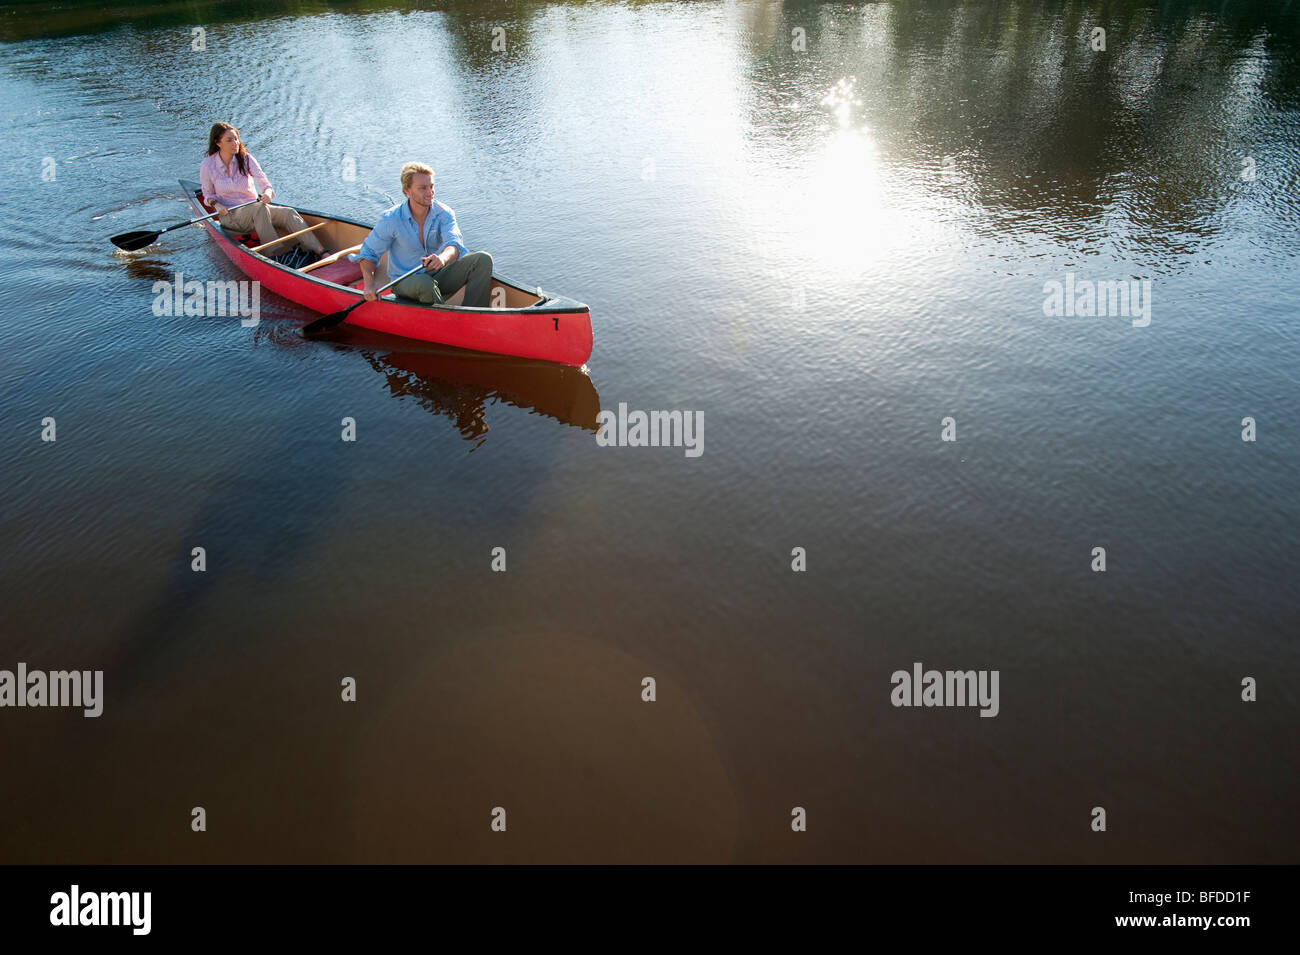 A couple paddles a canoe in Everglades National Park, Florida. - Stock Image